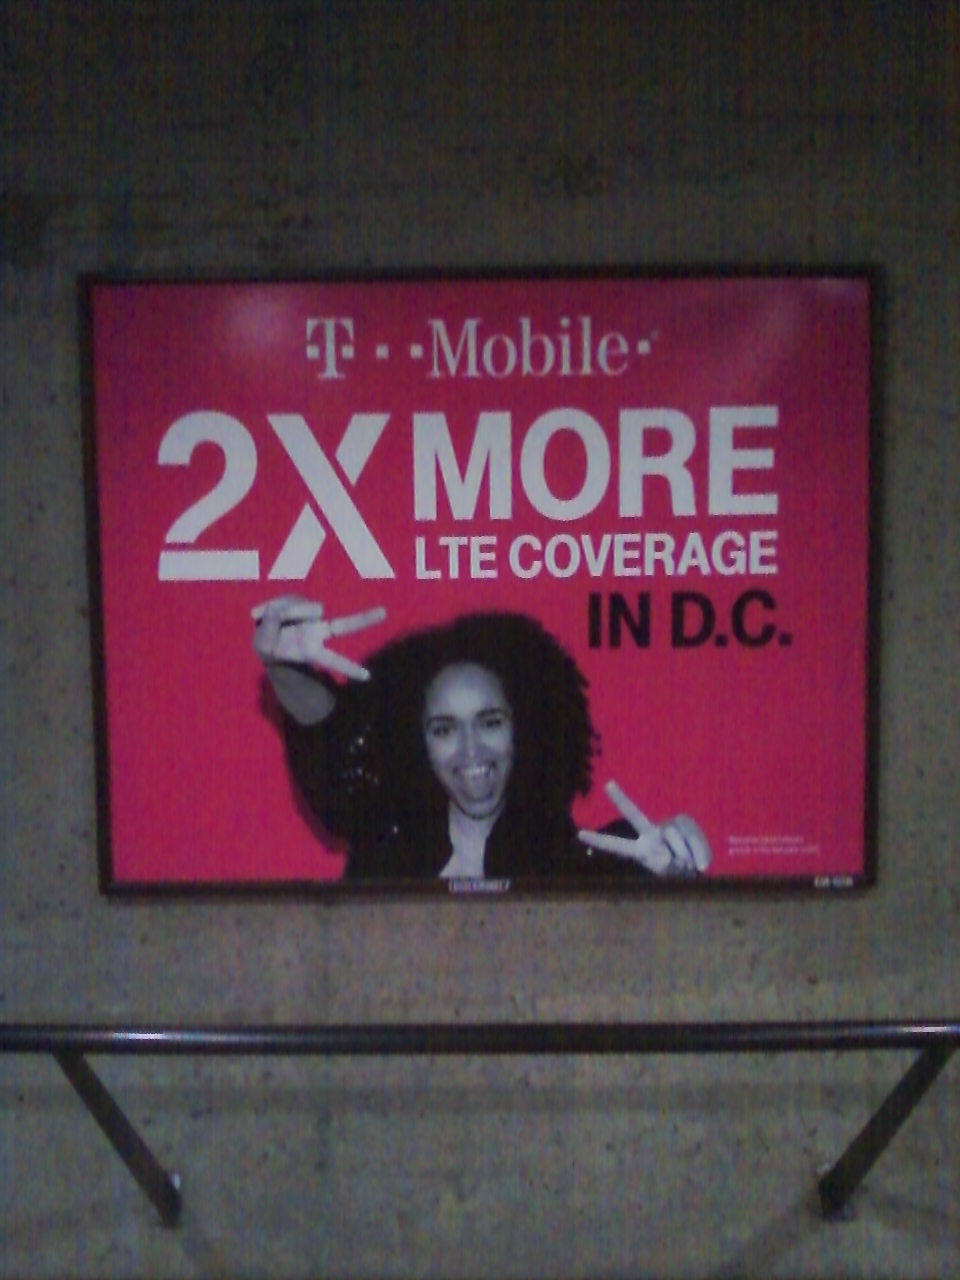 WMATA/DC Metro T-Mobile Advertisement promoting two times as much 4G/LGE coverage when it seems they can barely manage 2G in most Metro stations. For additional details, please visit www.wirelessnotes.org.